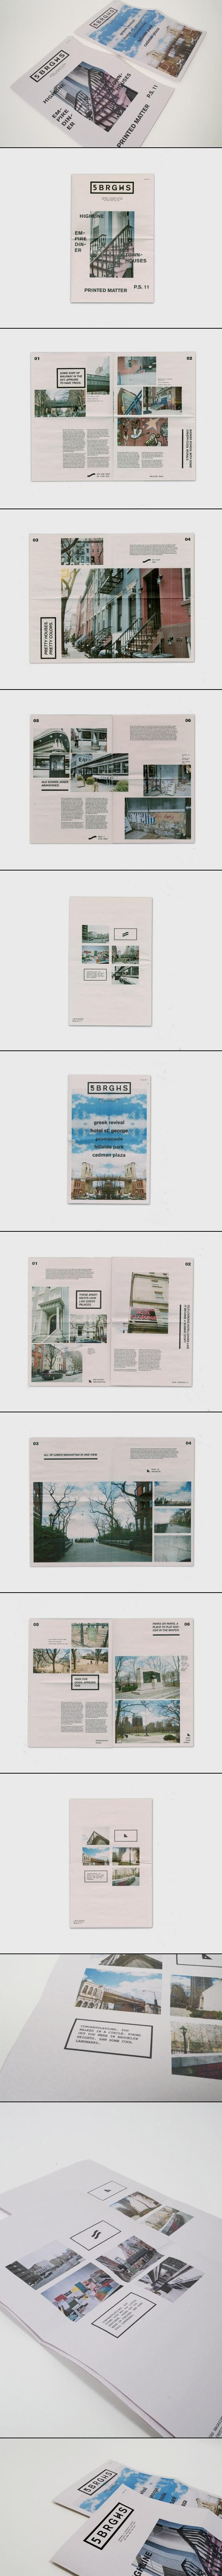 Like the use of vintage hue images and paper used against the bold text with…